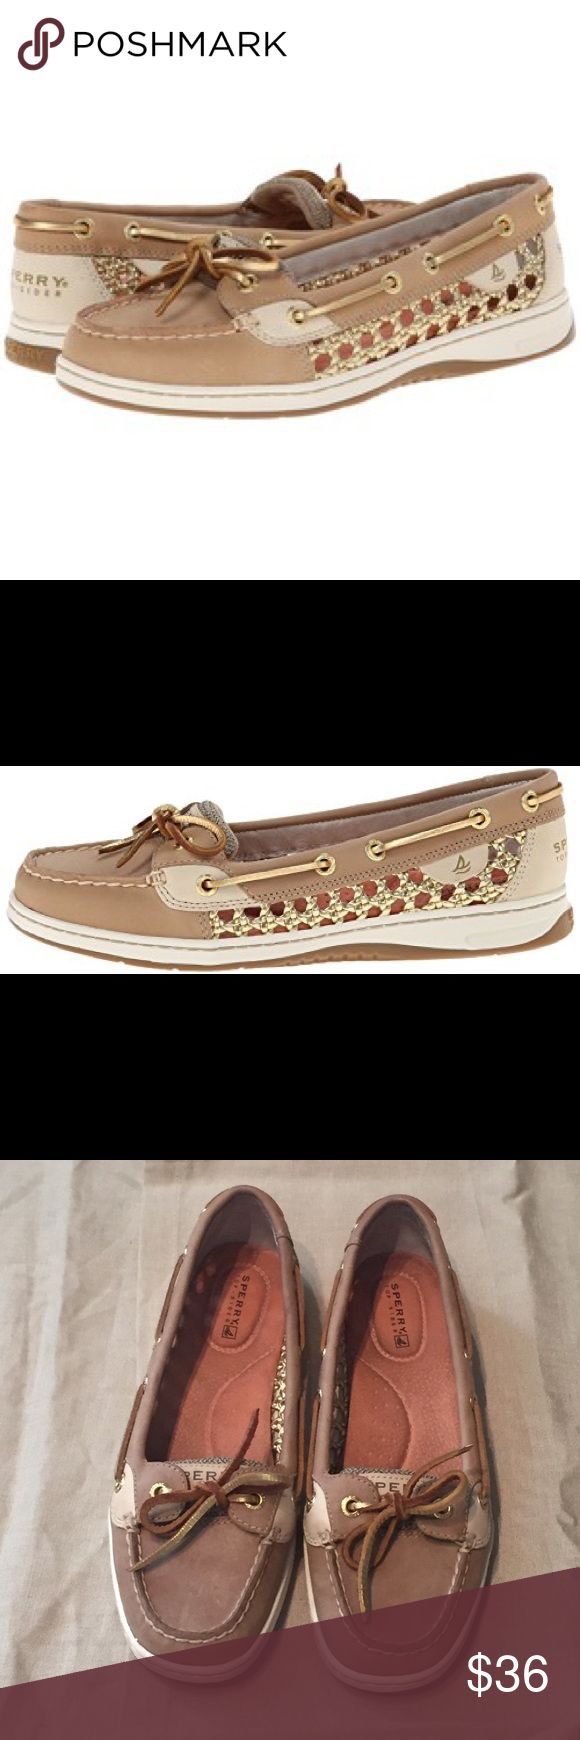 SPERRY Top Sider Angelfish gold cane boat shoes These SPERRY Top Sider boat/deck shoes are practically new! Style is Angelfish gold cane. Size 6.5 Sperry Top-Sider Shoes